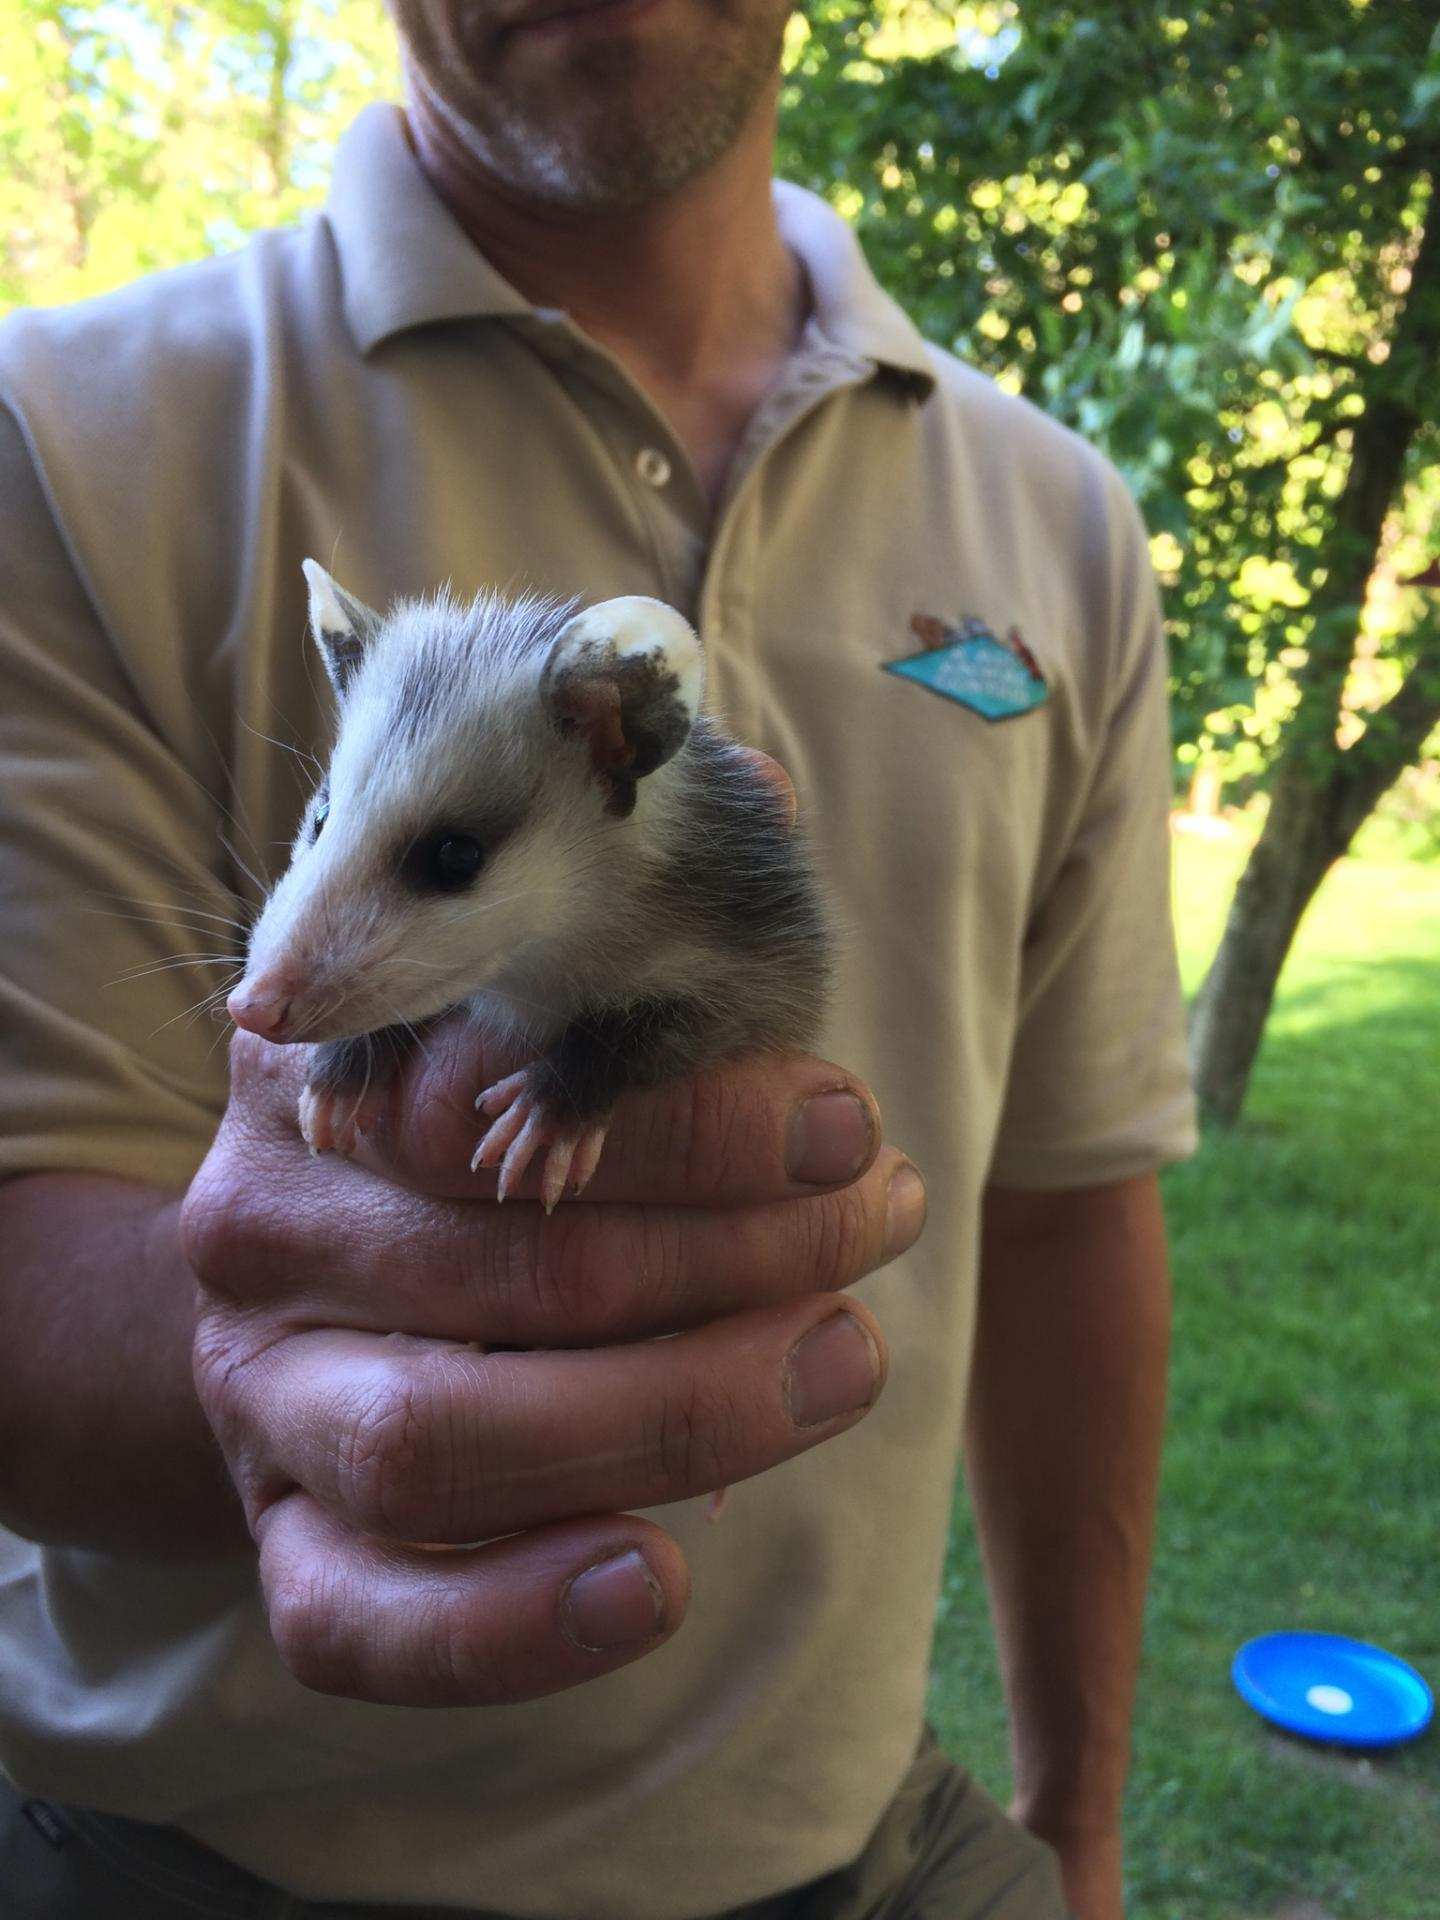 Opossum Or Possum Trapping Pittsburgh Pennsylvania A All